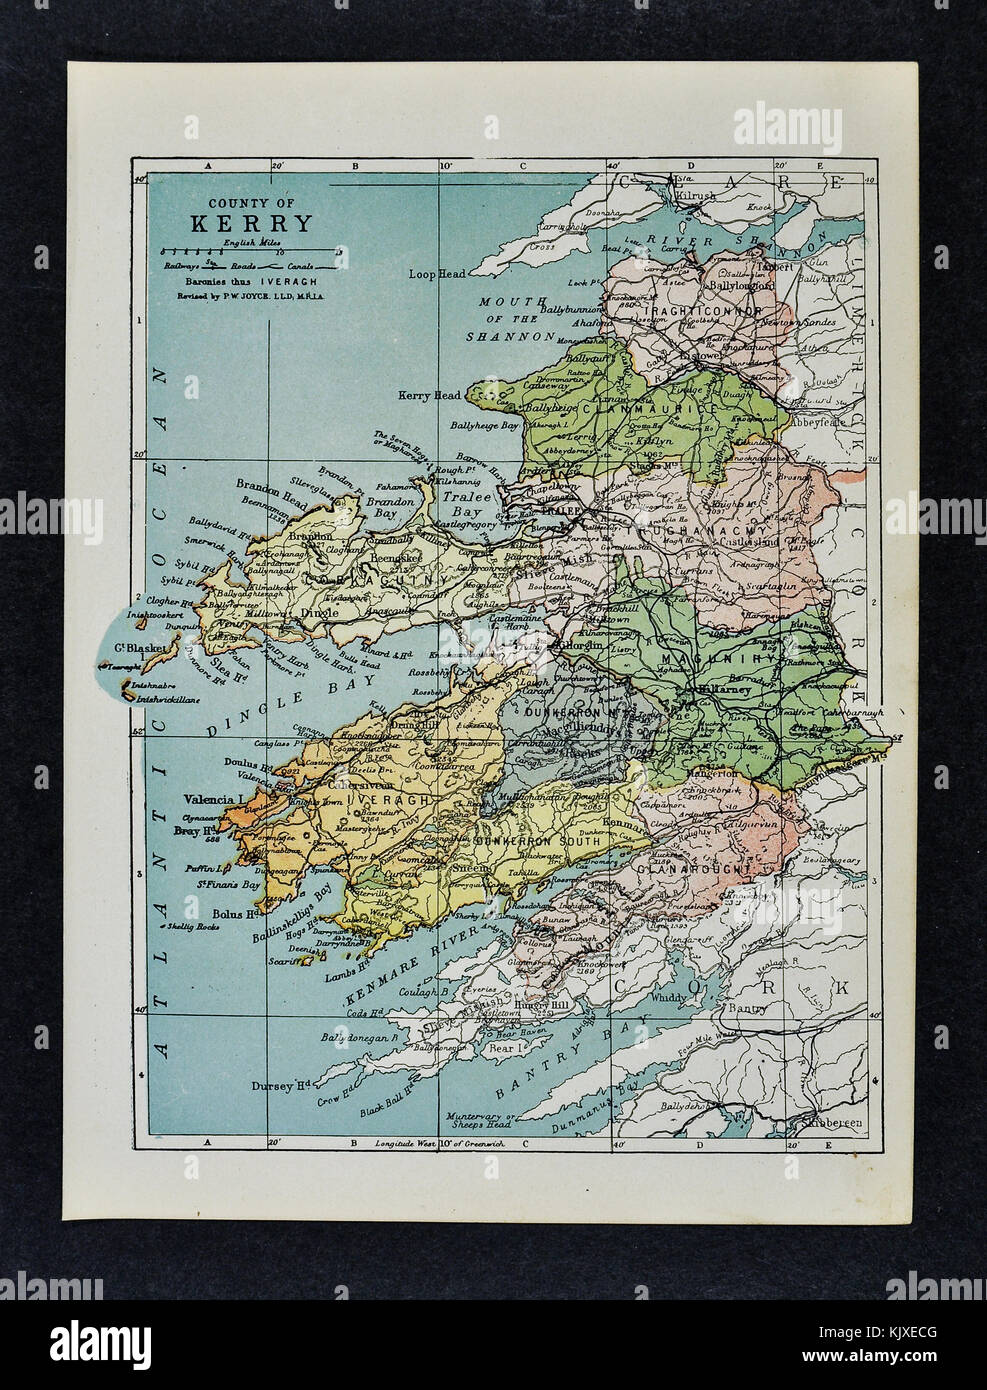 Map Of Ireland Showing Dingle.Antique Ireland Map Kerry County Killarney Listowel Tralee Stock